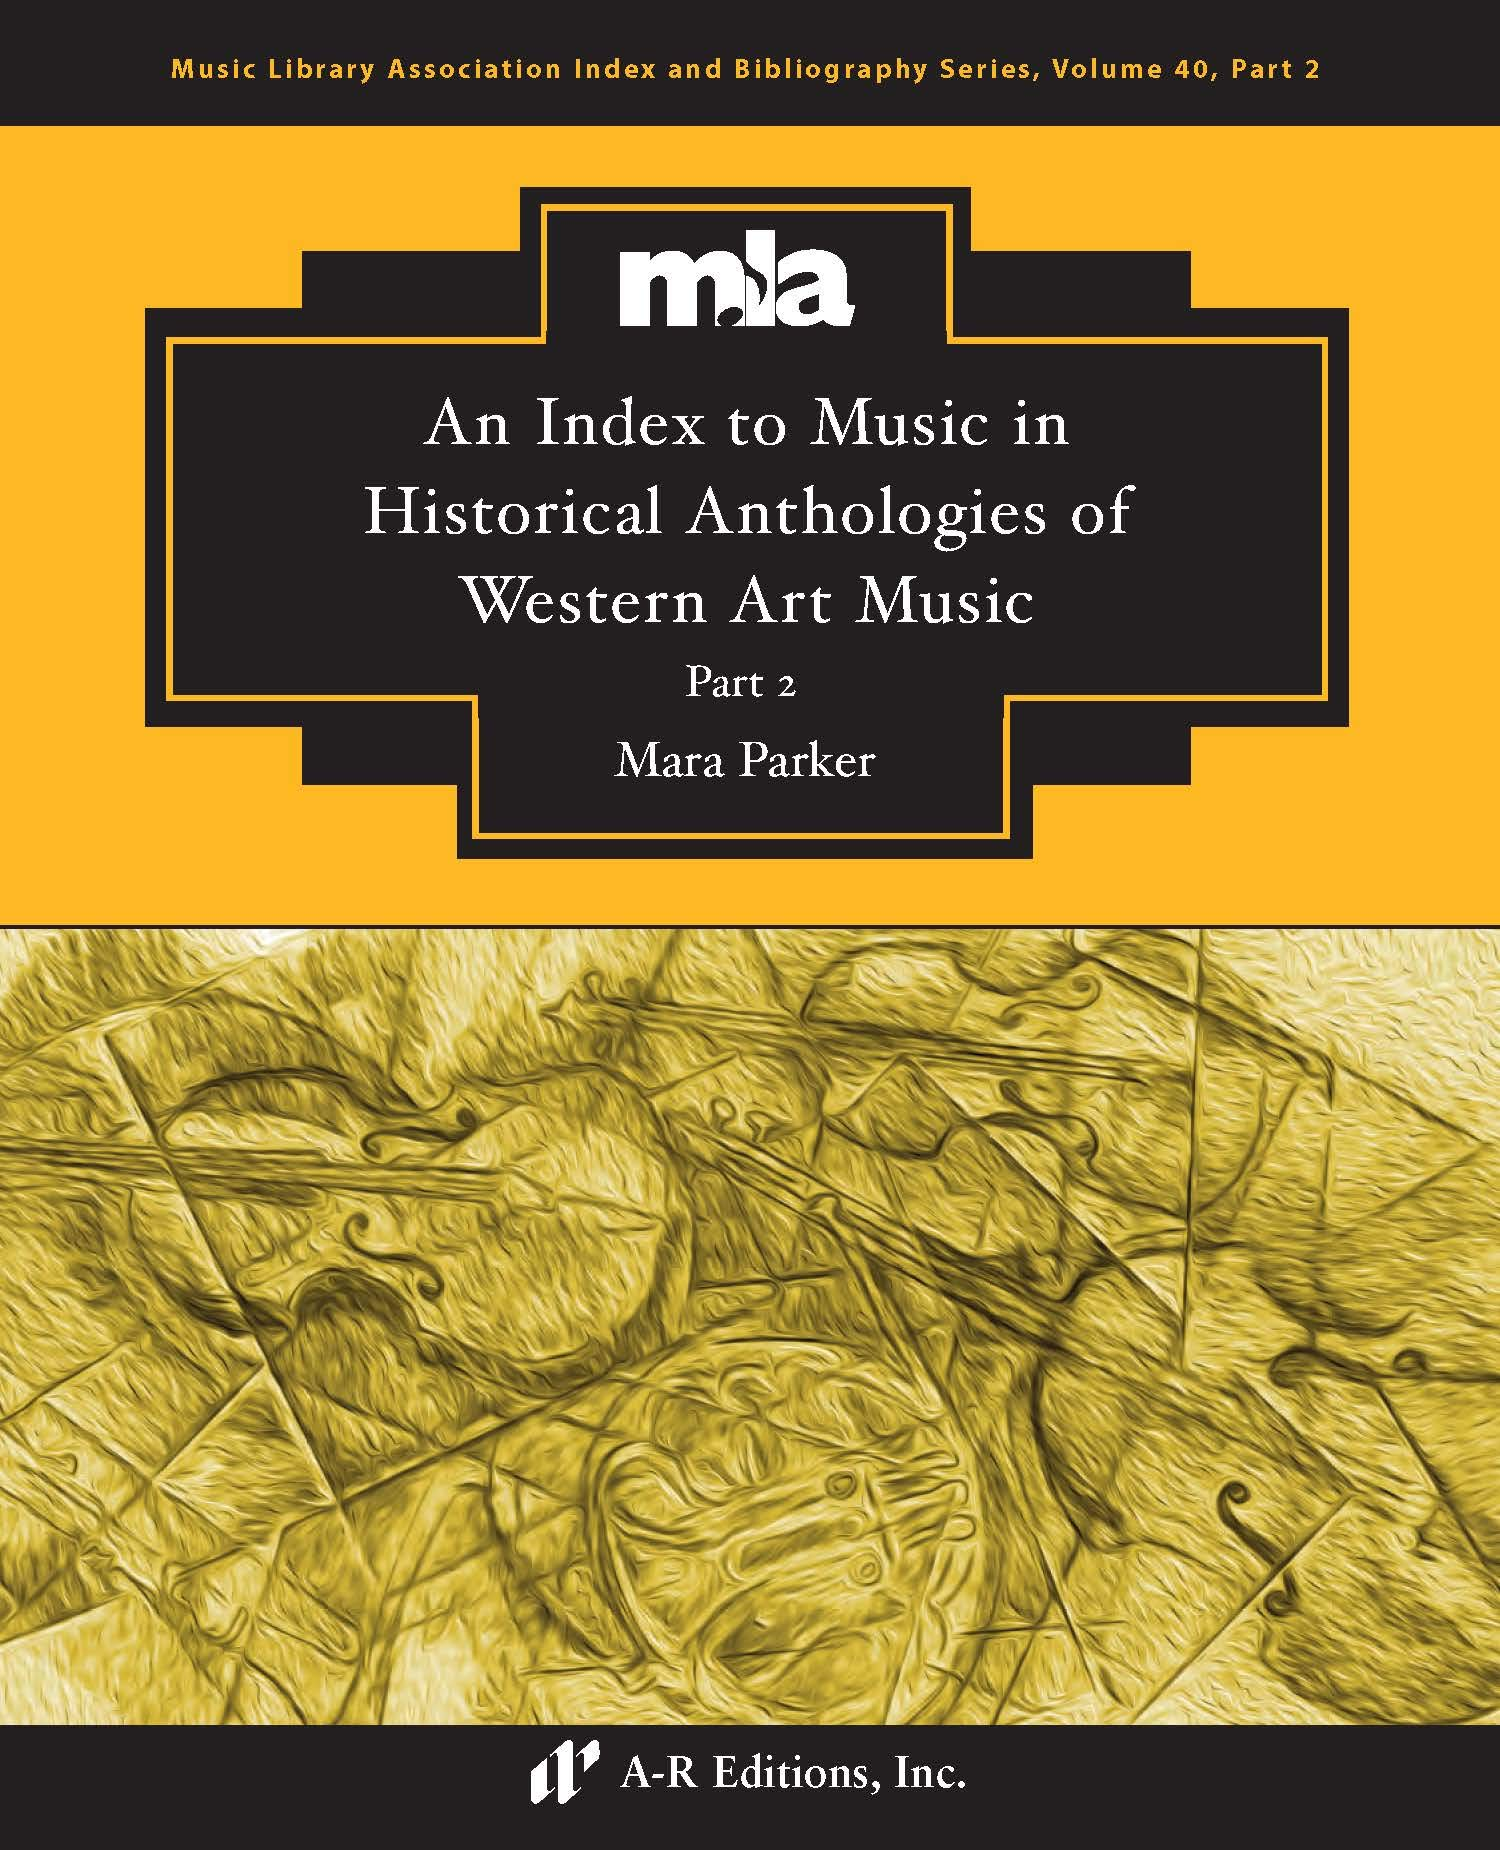 An Index to Music in Selected Historical Anthologies of Western Art